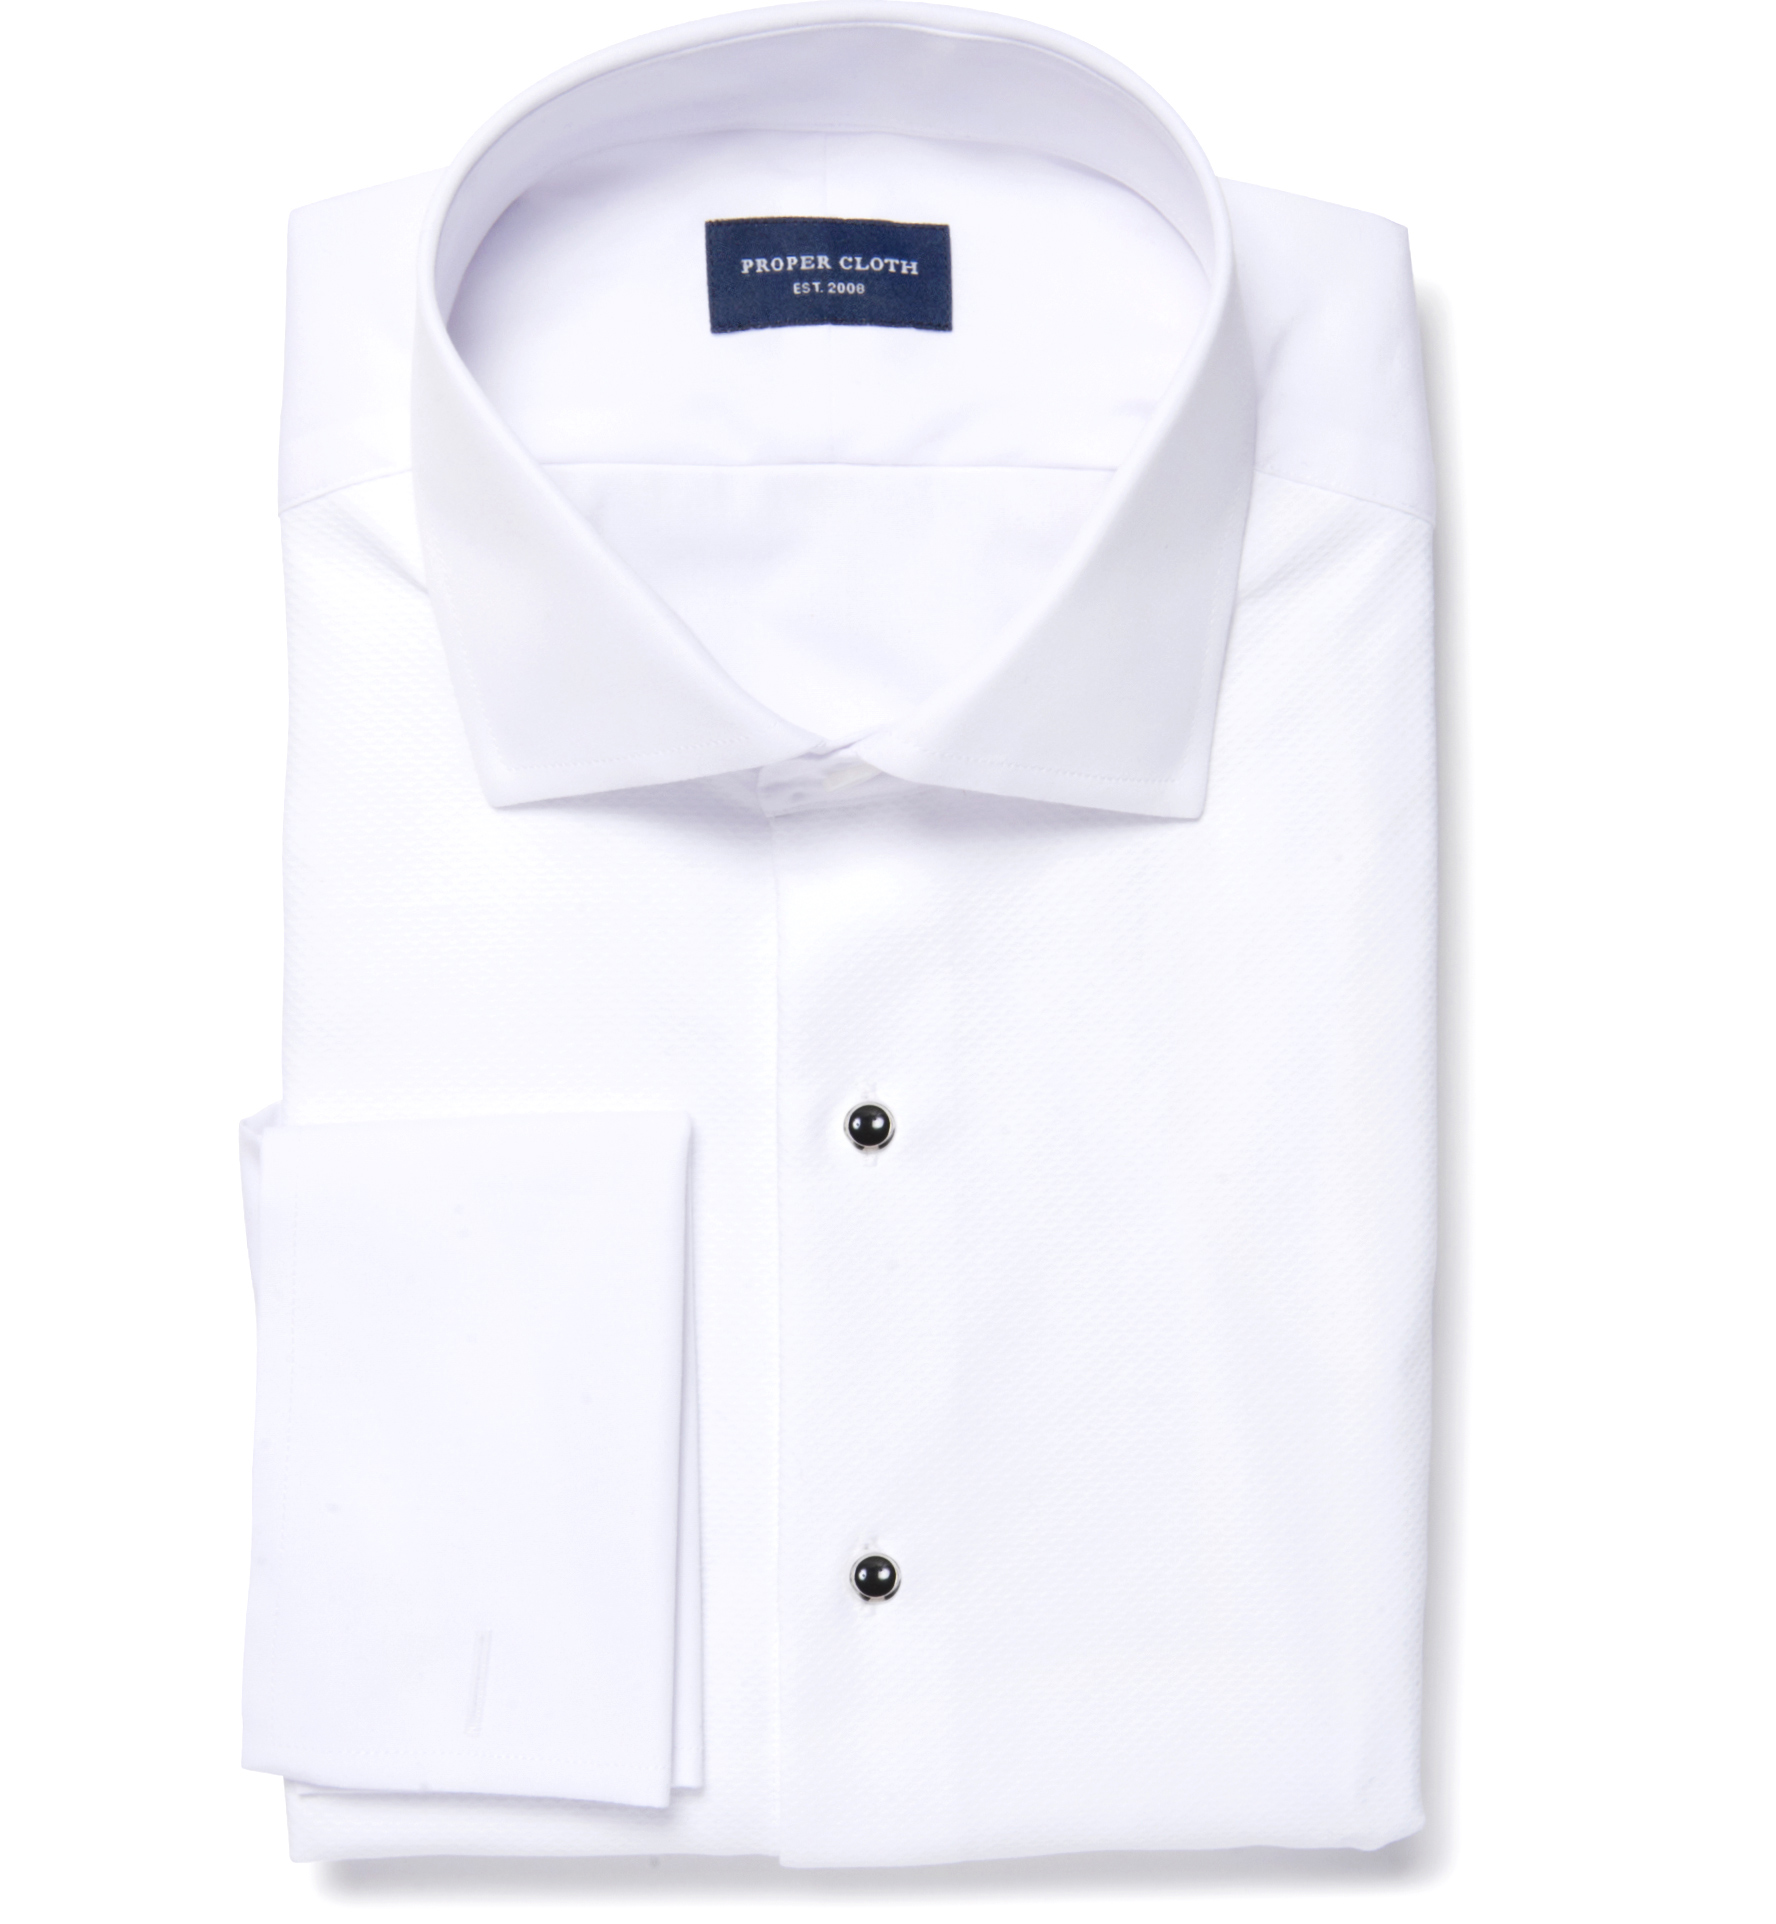 Thomas mason white luxury broadcloth men 39 s dress shirt by for Proper cloth custom shirt price